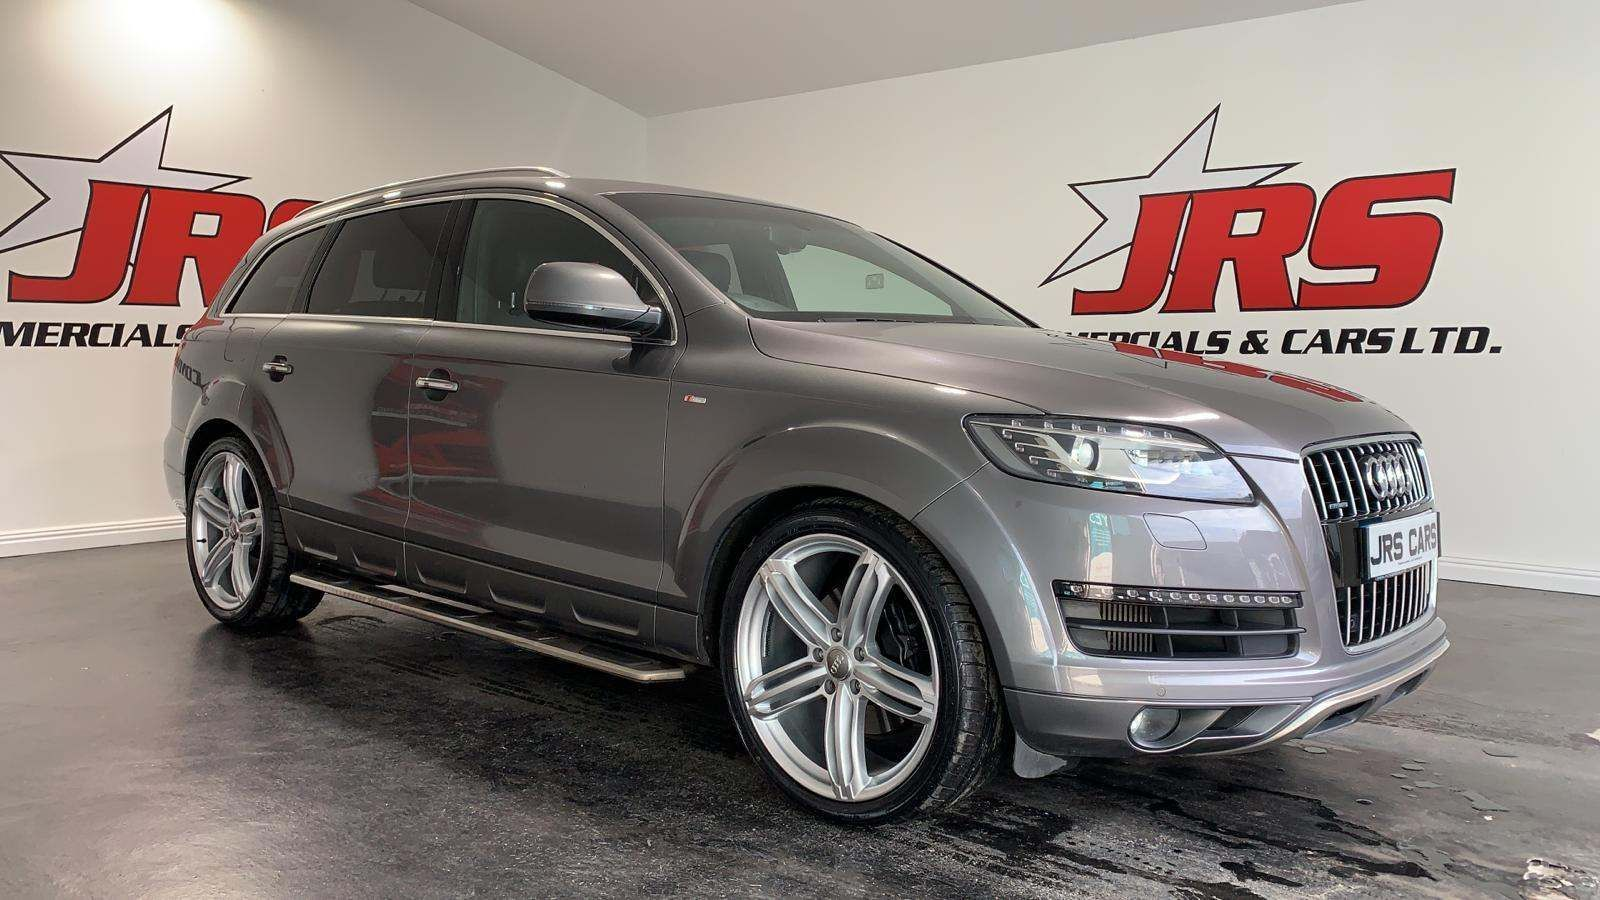 2015 AUDI Q7 3.0 TDI S line Style Edition Tiptronic quattro Diesel Automatic Rev Cam – Tow Bar – 7 Seats – J R S Commercials And Cars Dungannon full